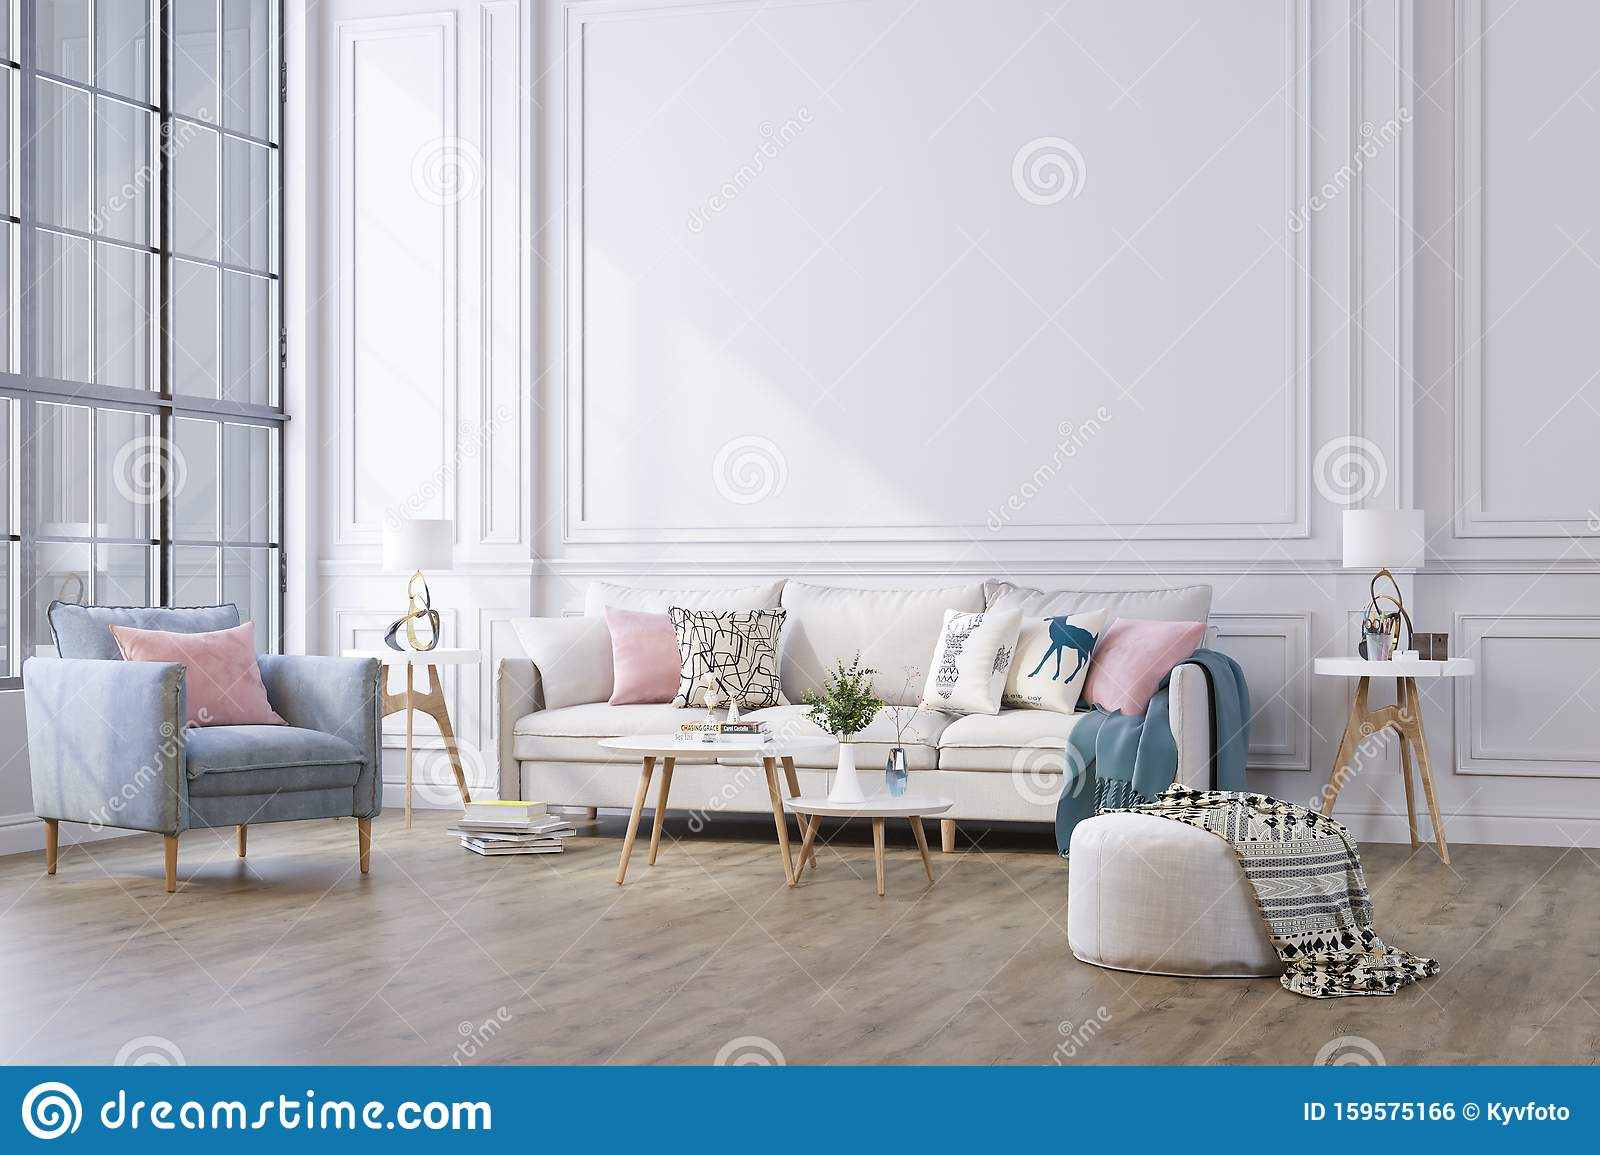 Decorative Background For Home Office And Hotel Modern Interior Design Stock Illustration Illustration Of Lifestyle Luxury 159575166